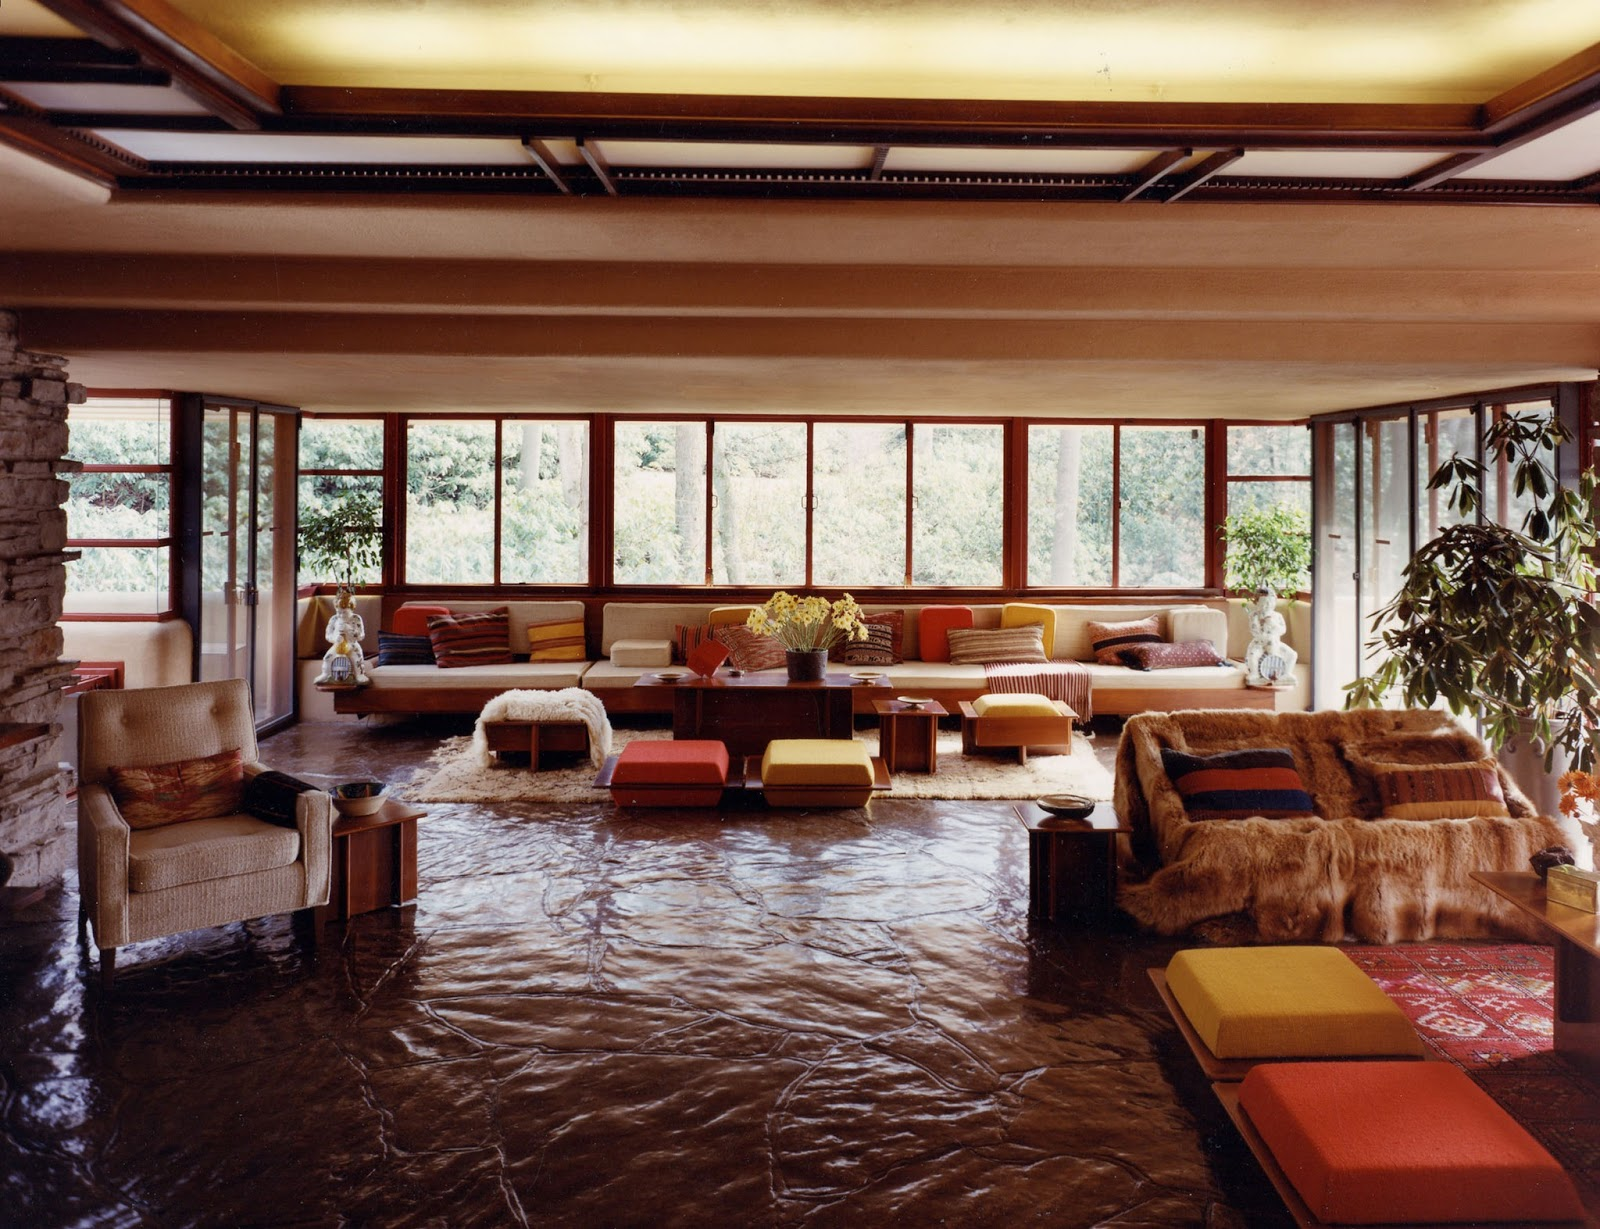 Tour America's History: Fallingwater